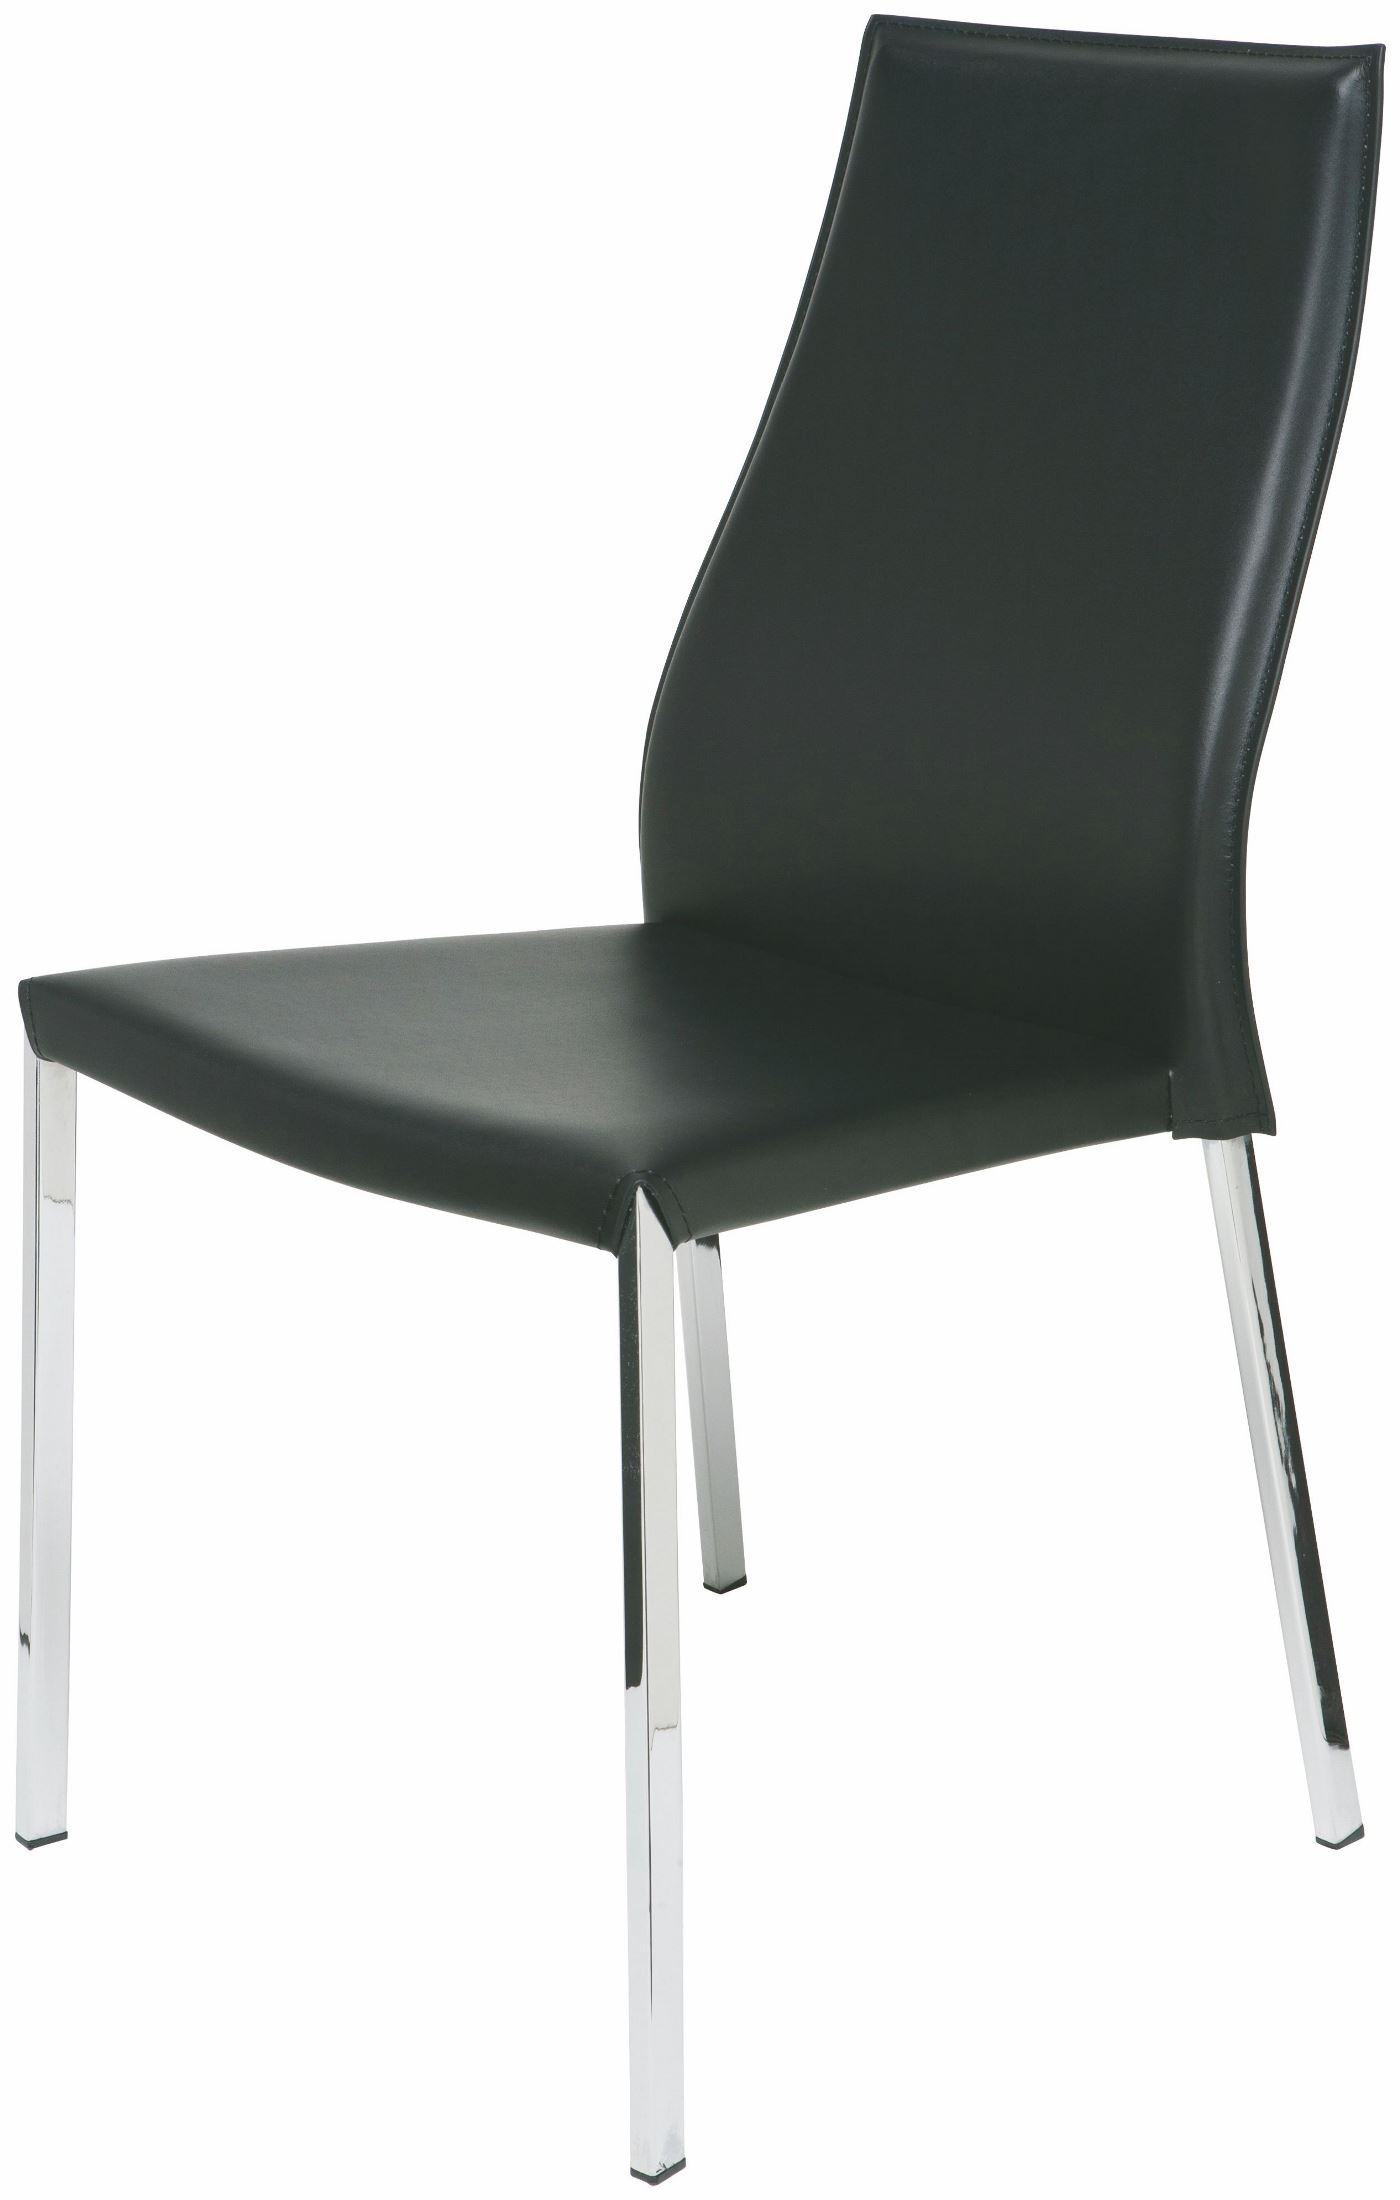 Eric black leather dining chair from nuevo coleman furniture for Black leather dining chairs